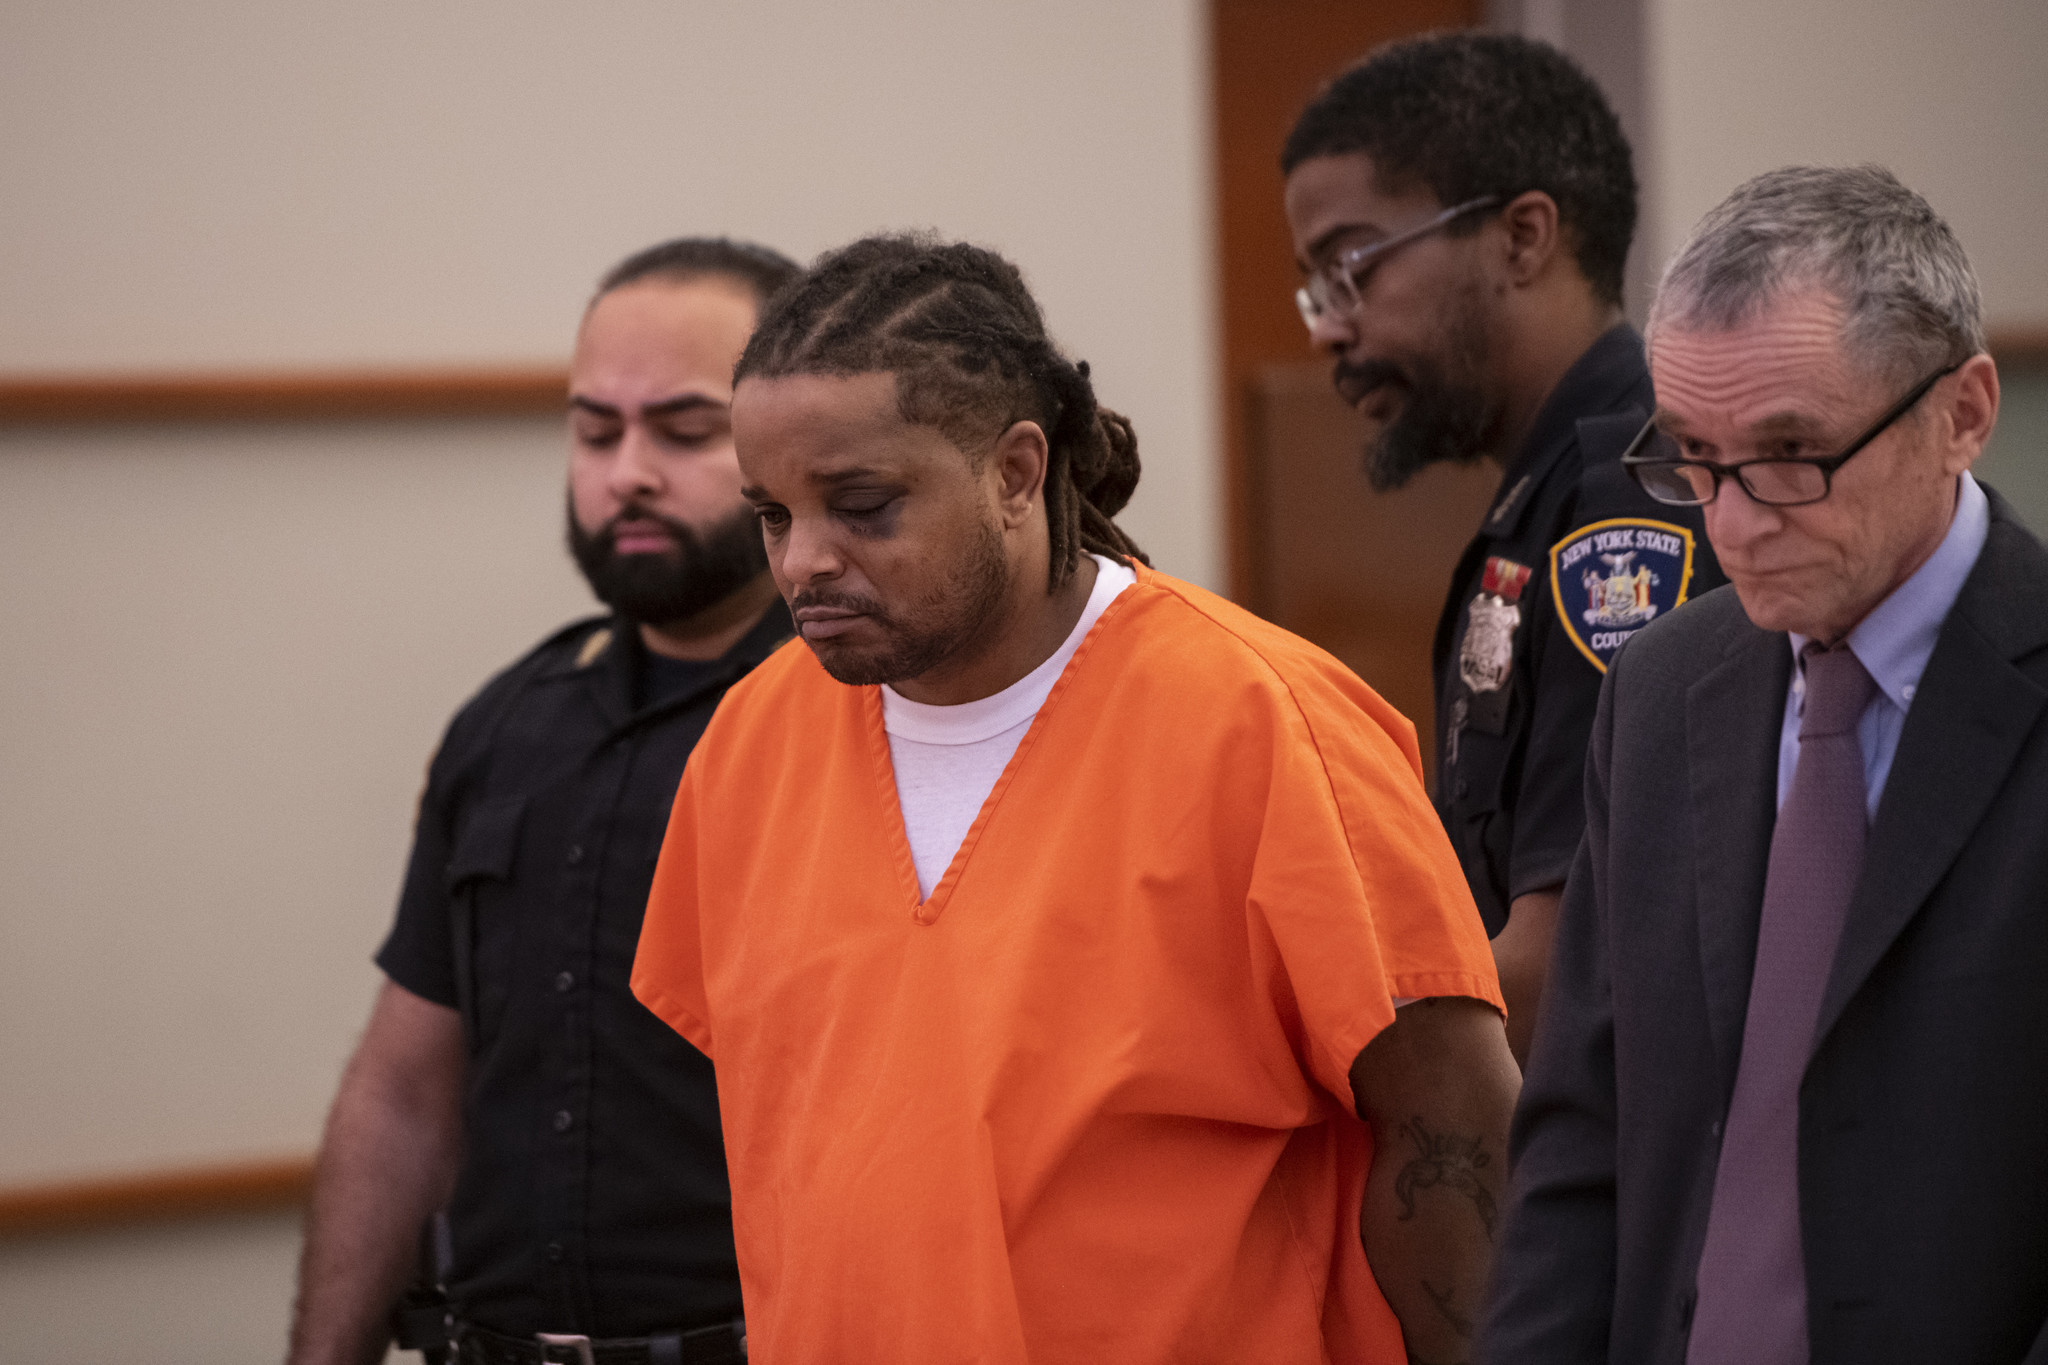 NYPD officers crowd Bronx courtroom for hearing of suspected cop shooter